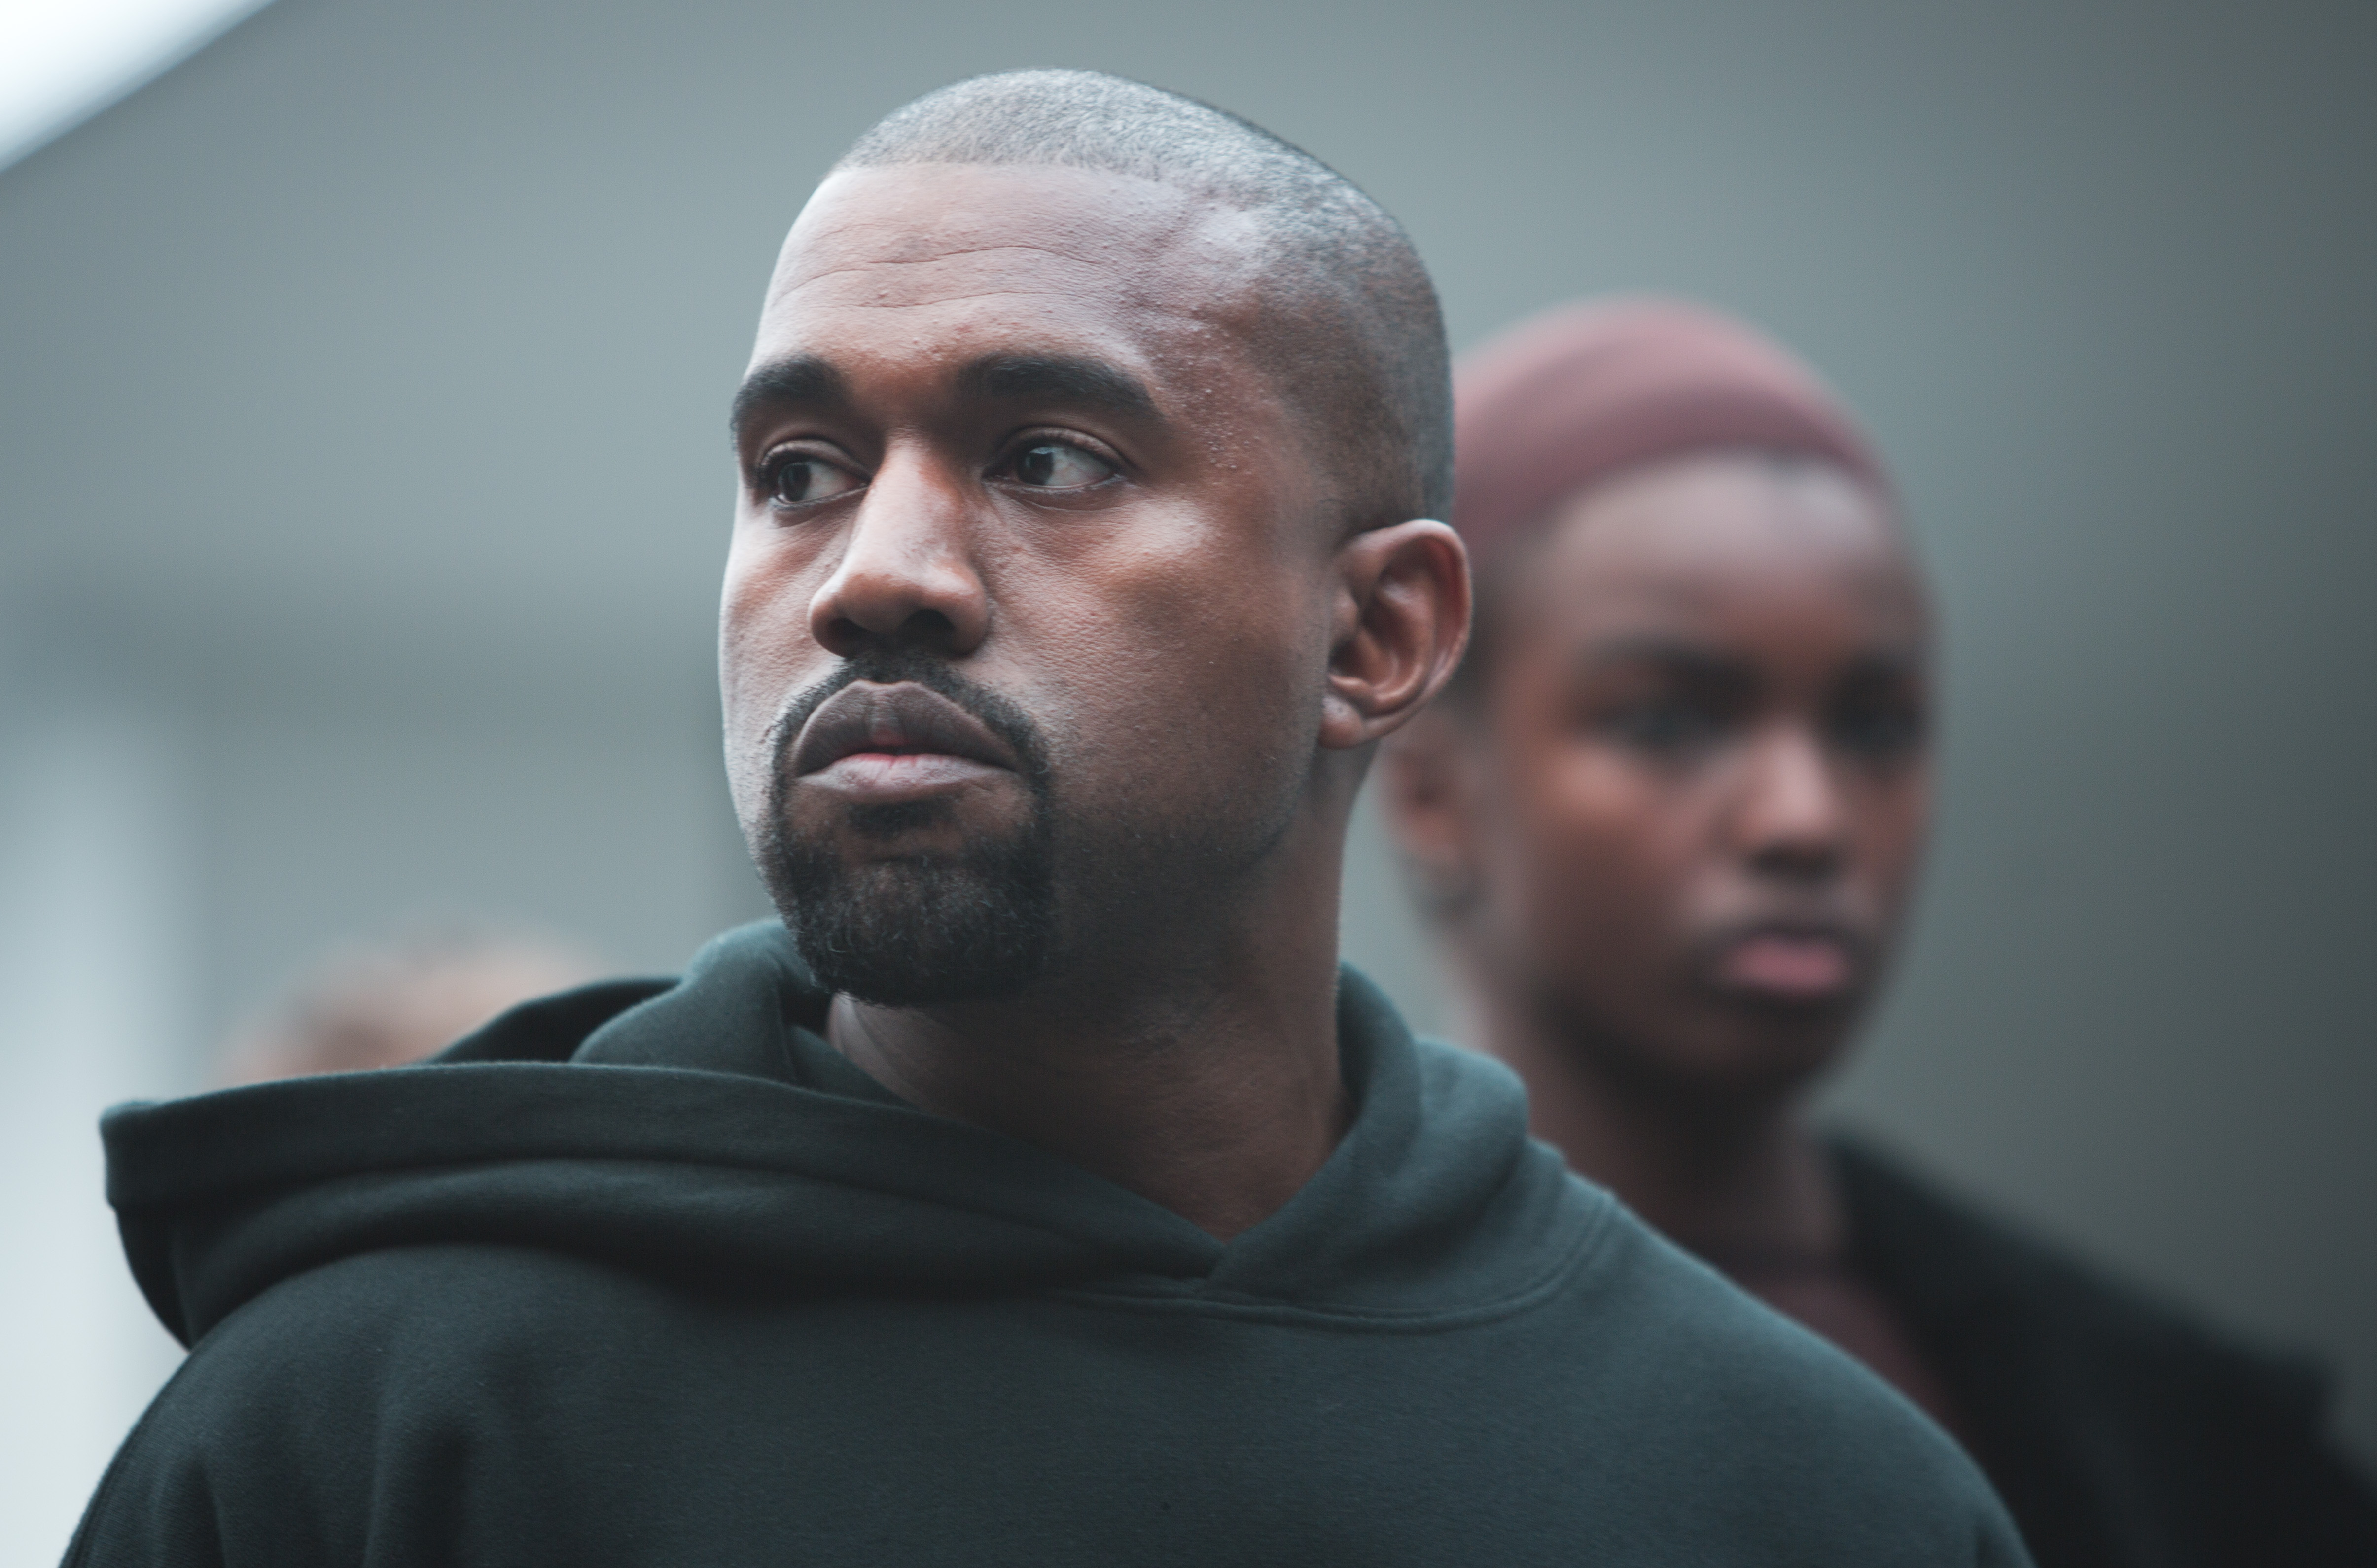 Dear Yeezus: The sad creative decline of the once-great Kanye